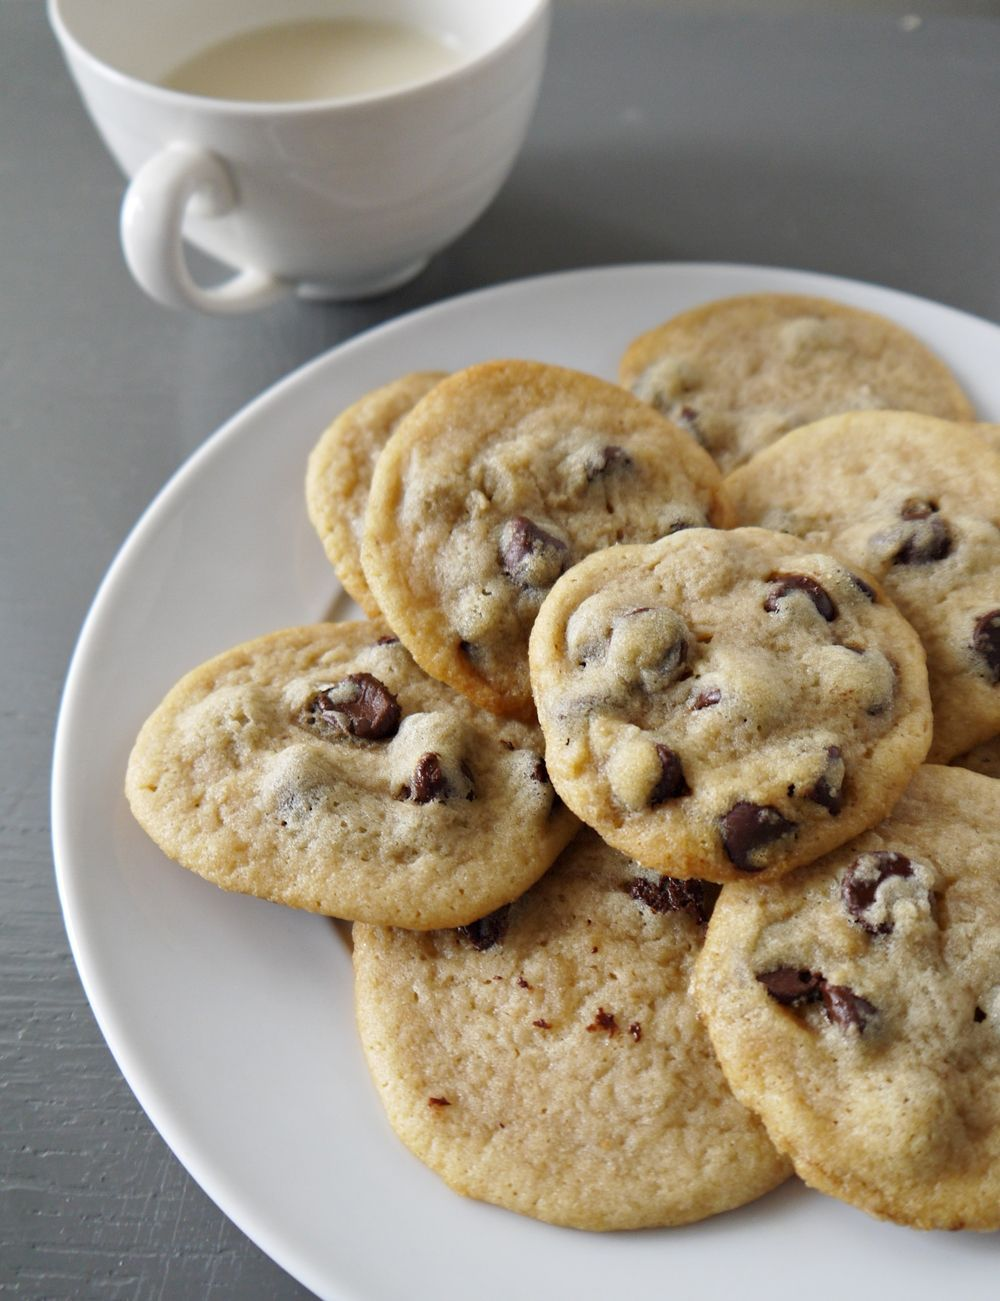 Best Chocolate Chip Cookies Ever are vegan? Taste for yourself!